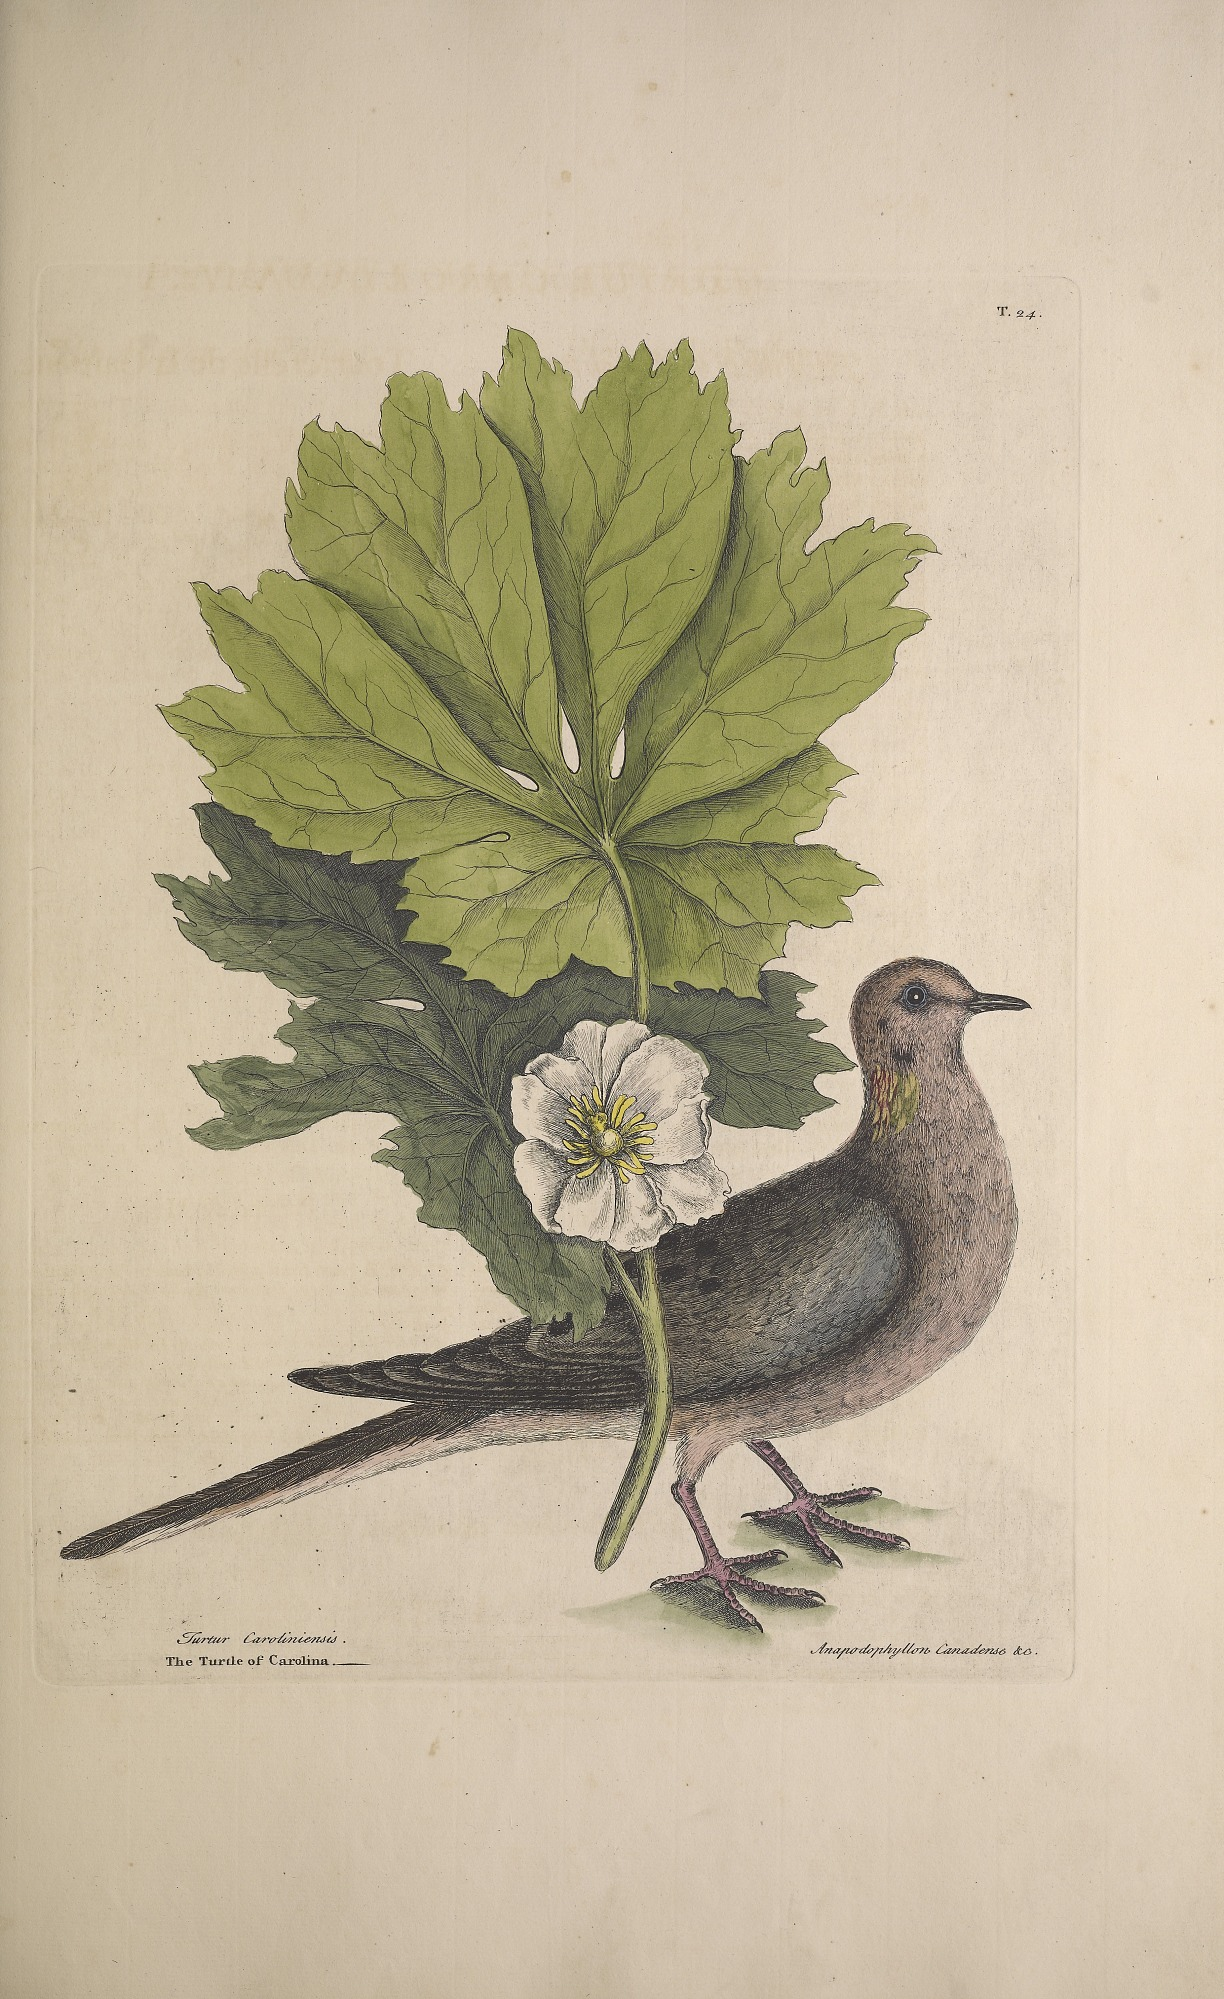 English naturalist Mark Catesby (1683-1749) spent years in the Americas cataloguing plants and animals, gathering seeds and specimens, and making watercolor sketches.